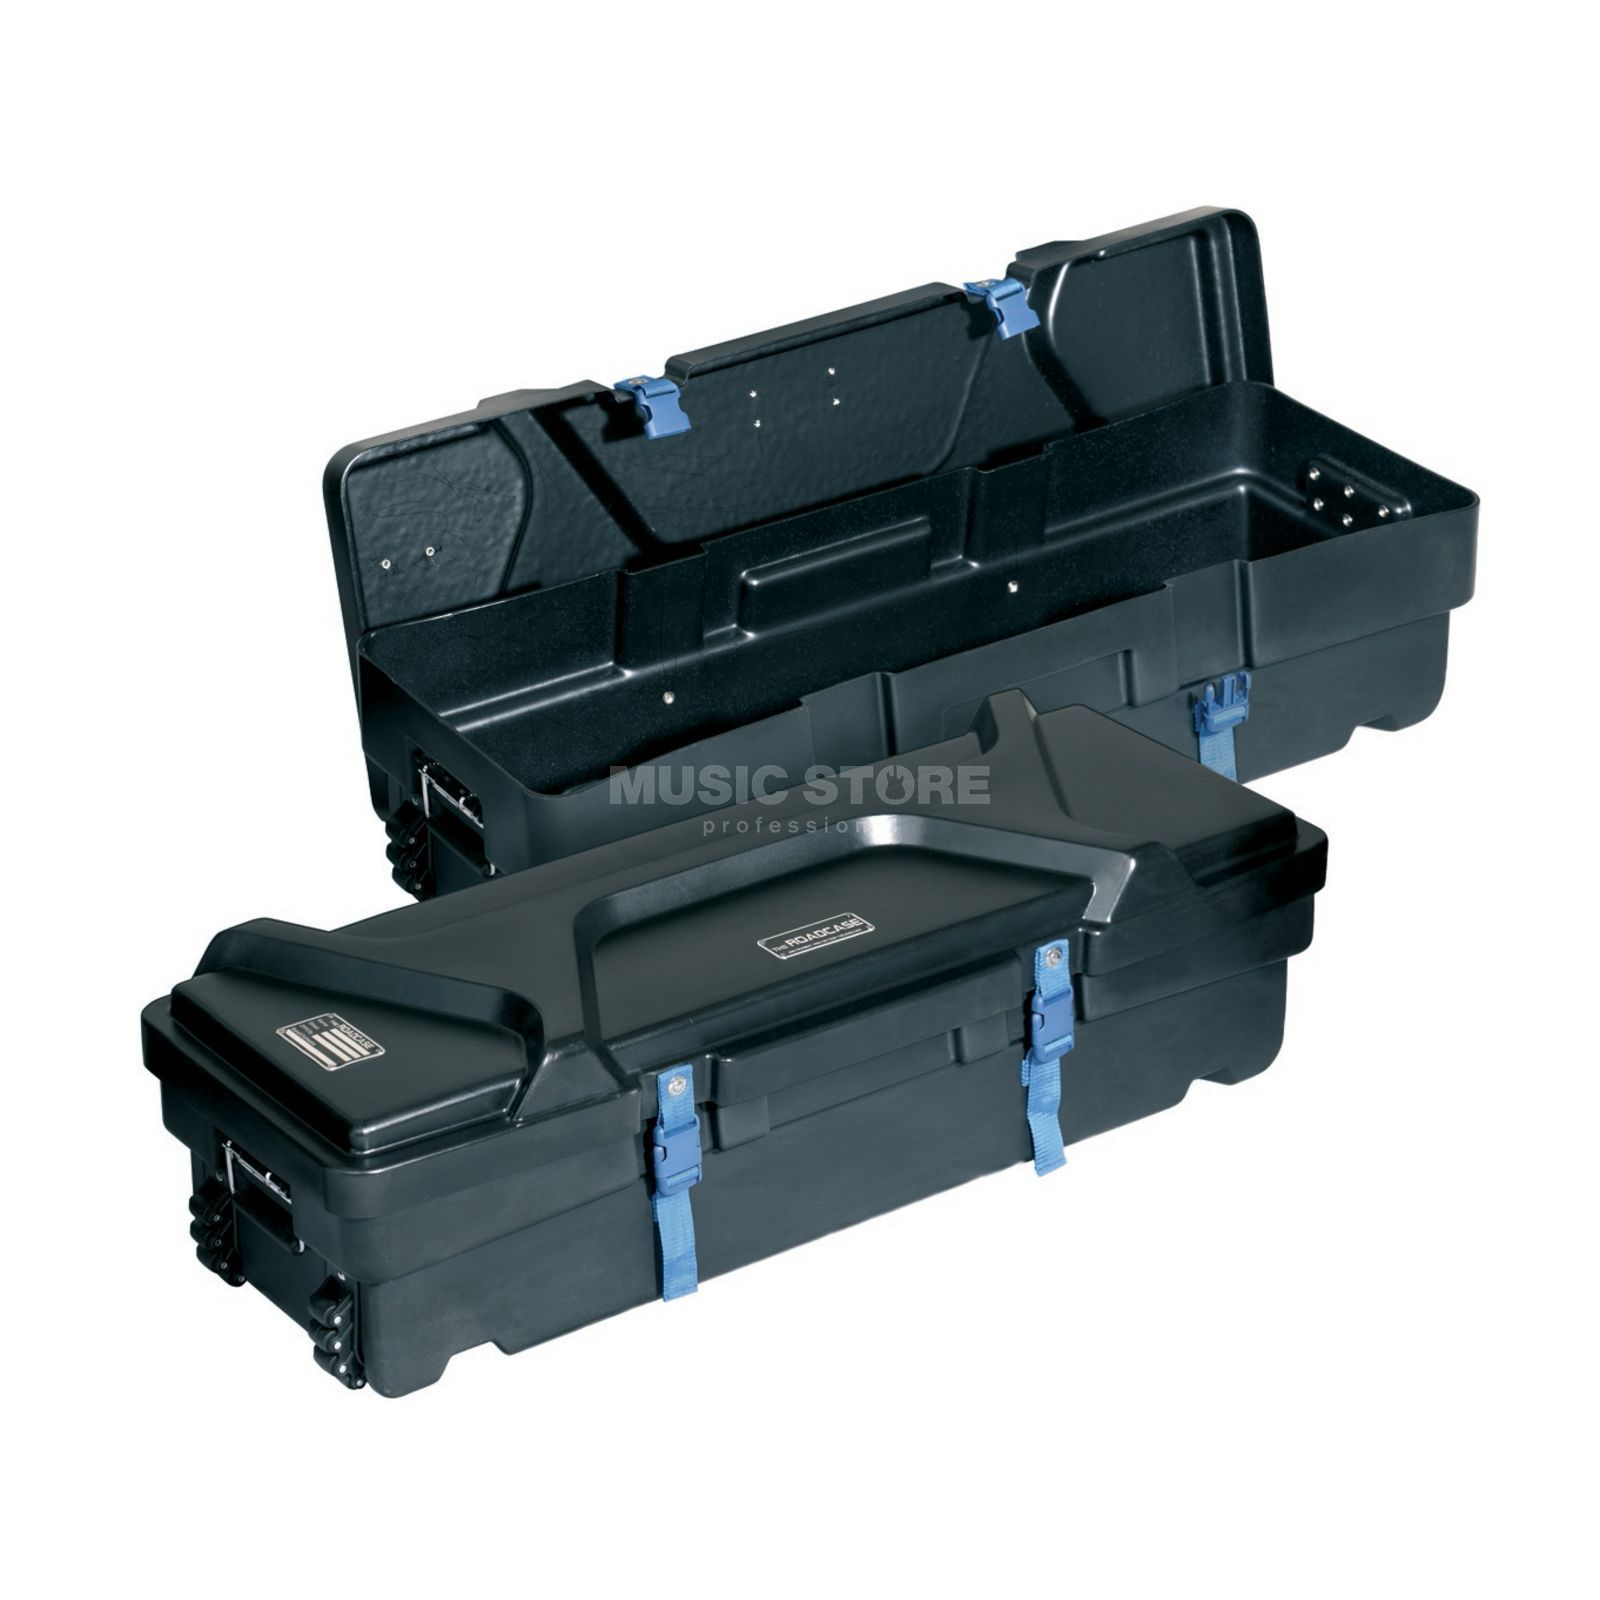 Roadcase Hardware Case, 105x37x30cm Produktbild